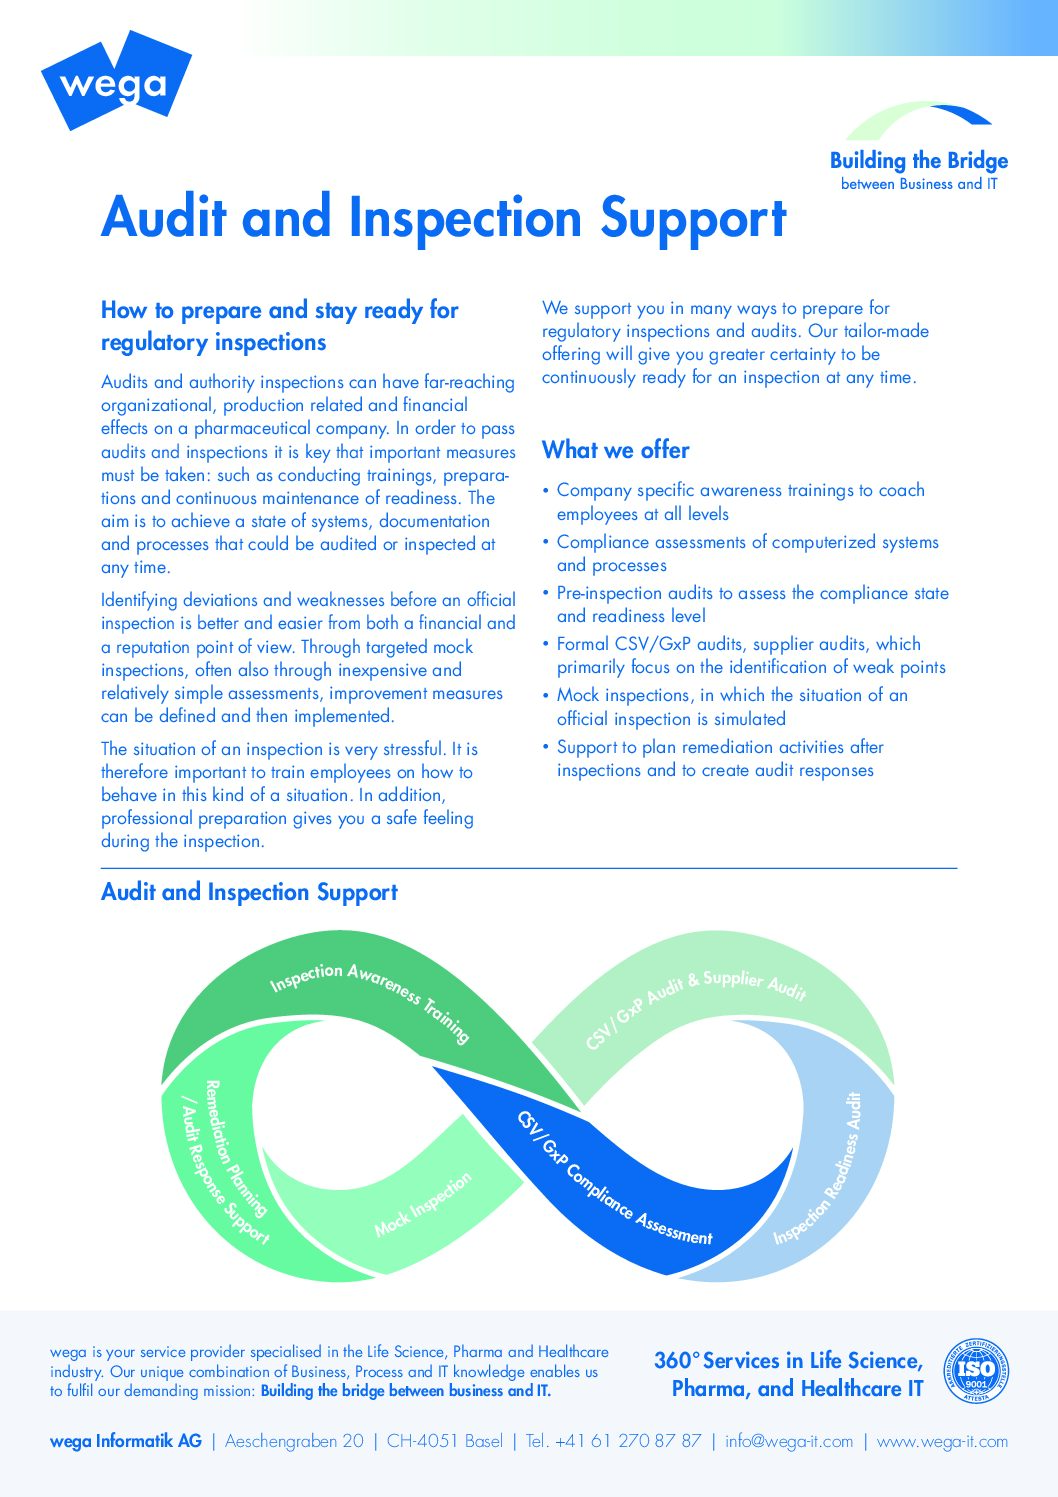 Audit and inspection support